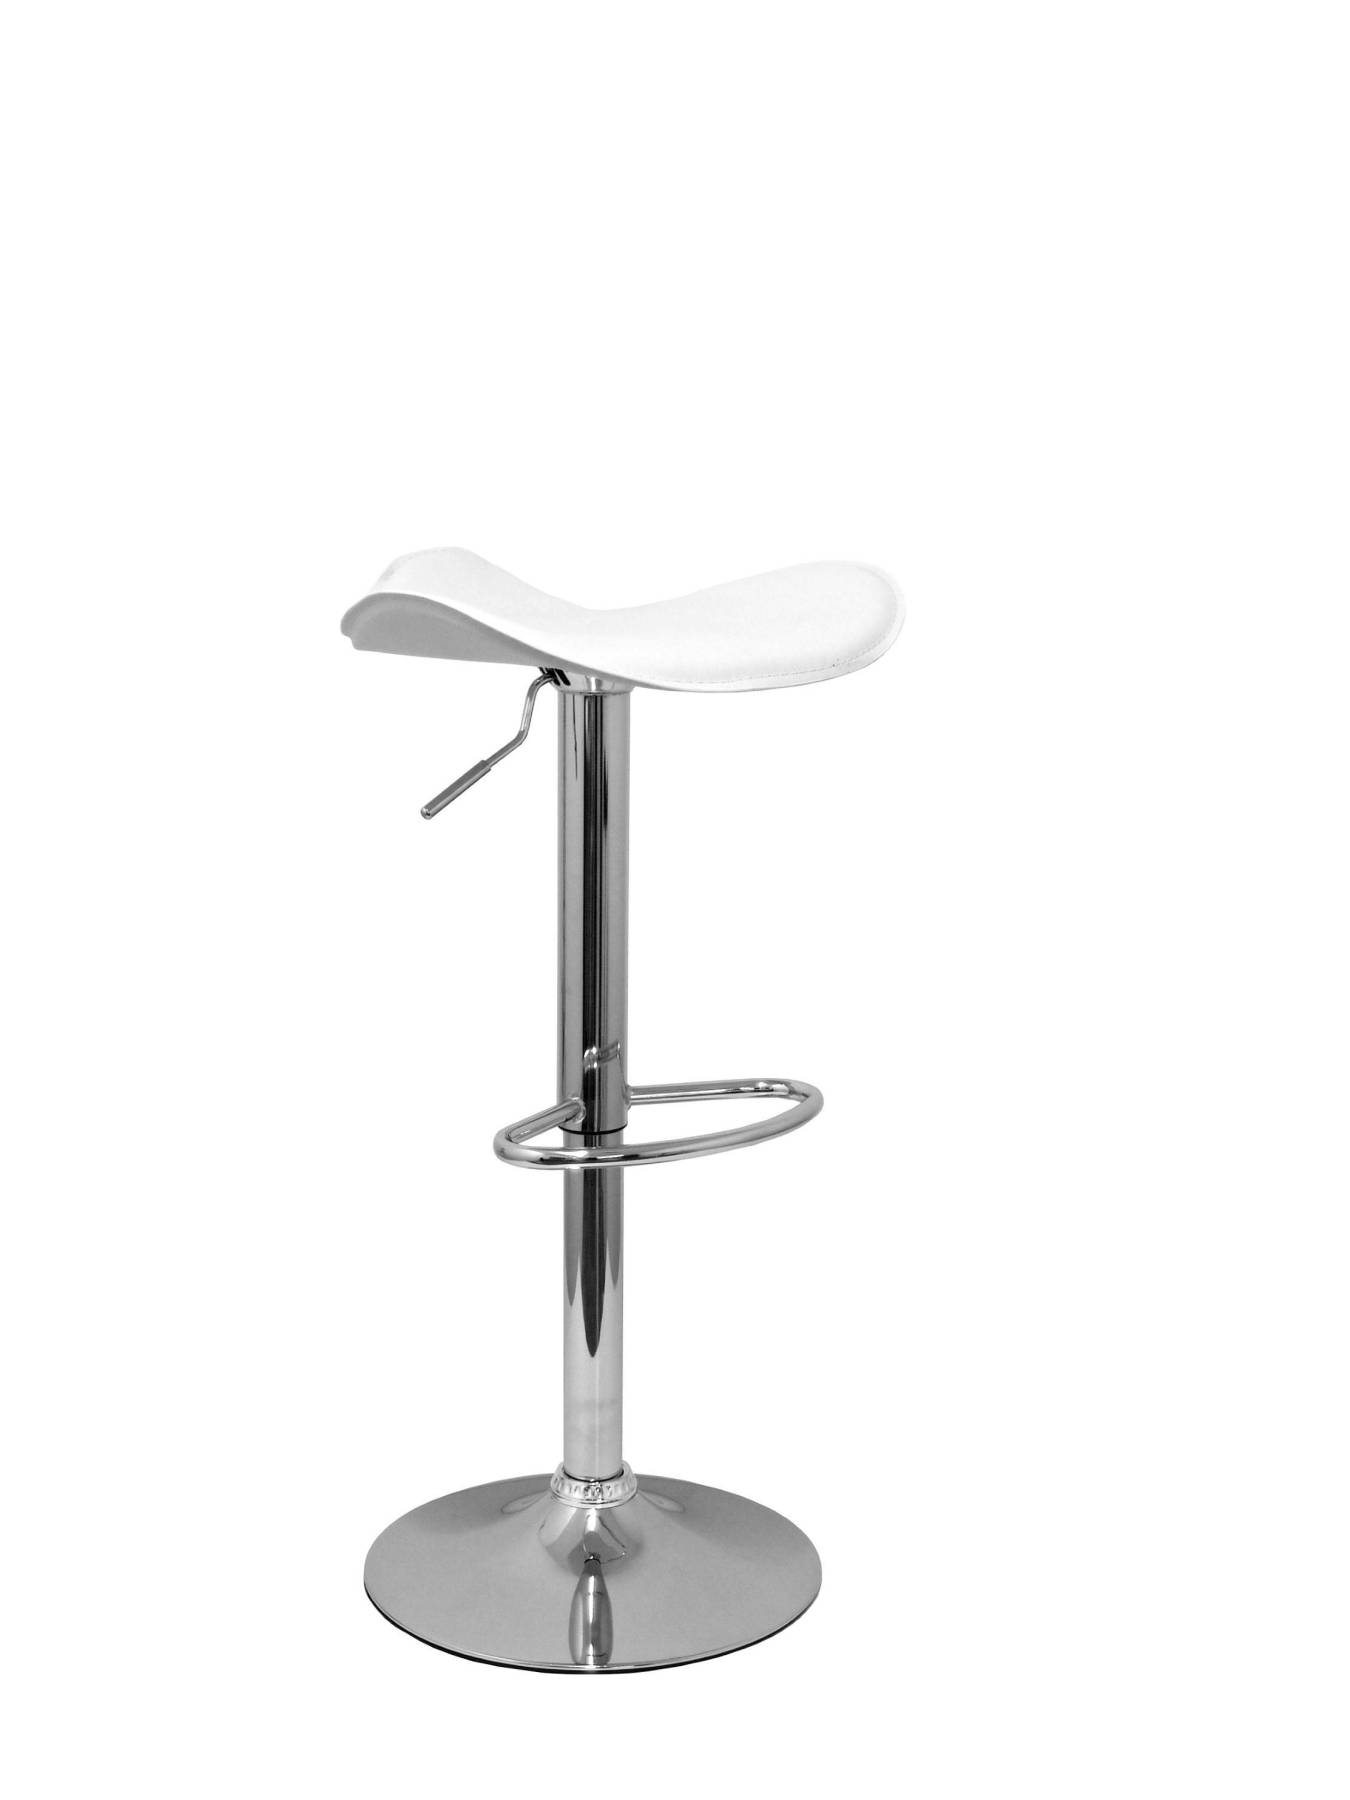 Stool's Bar, Swivel And Dimmable In High Altitude Using Cylinder Gas (include Hoop Foot Pegs Chrome) Up Seat De P